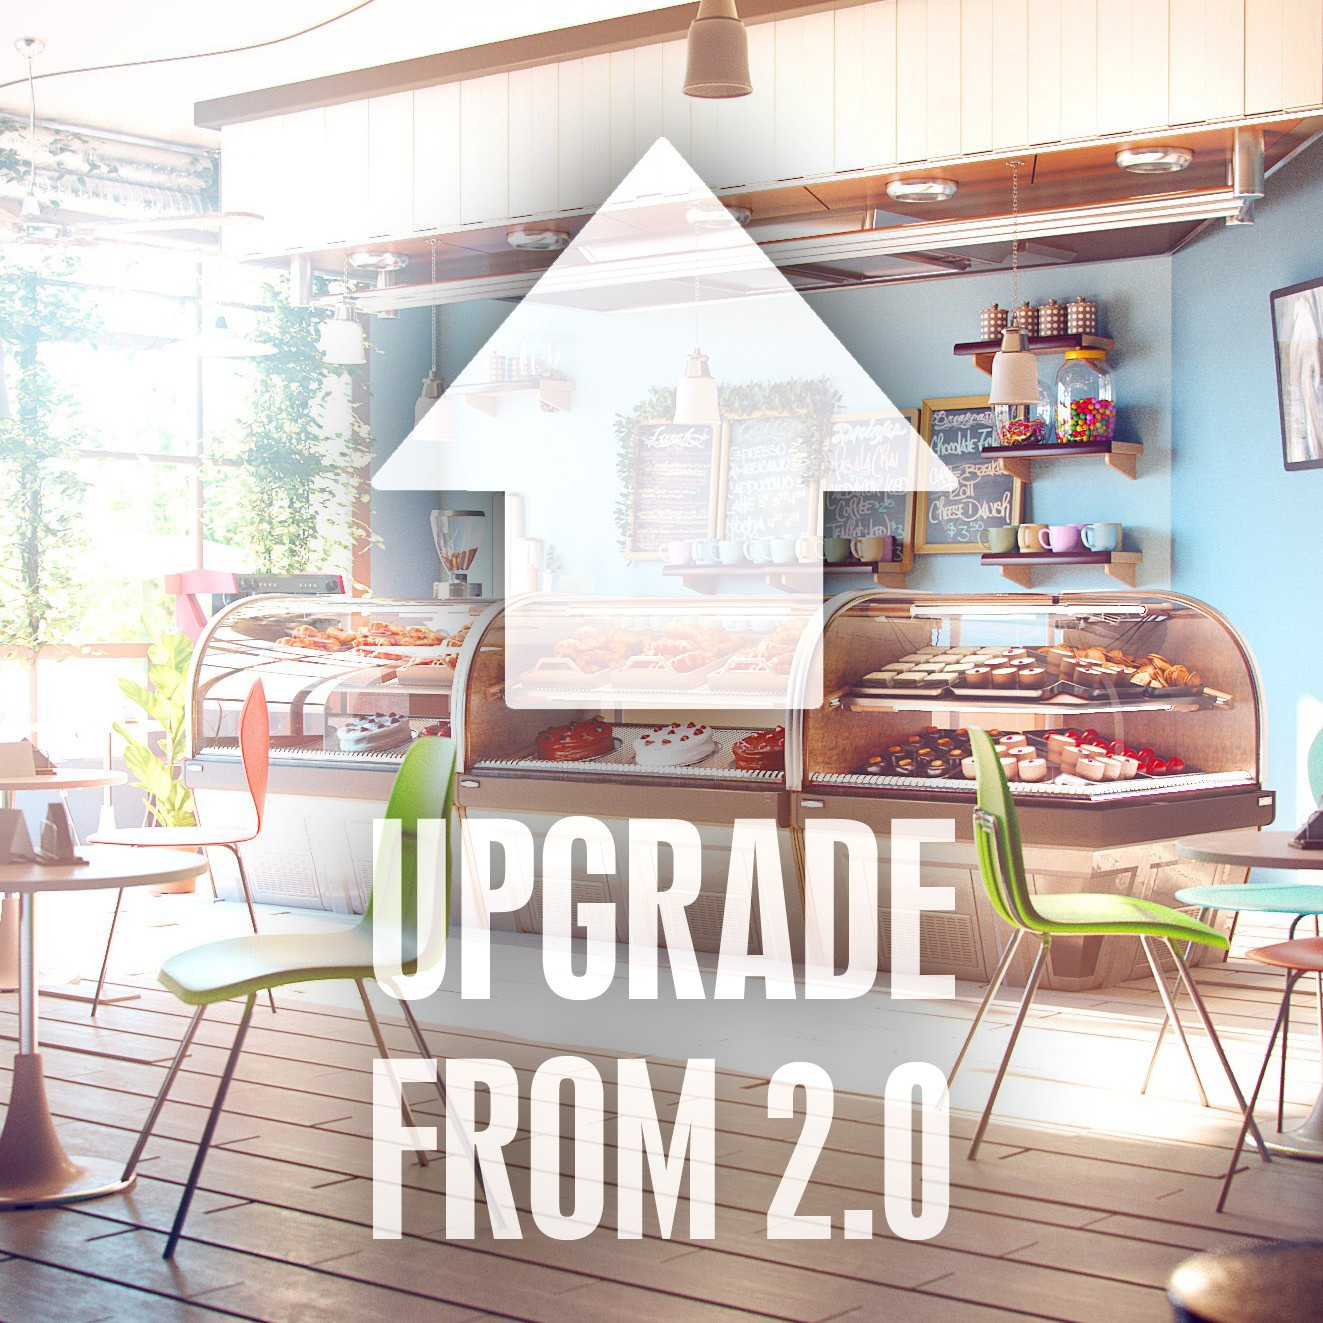 Upgrade from V-Ray 2.0 to V-ray 3.5 for 3ds Max